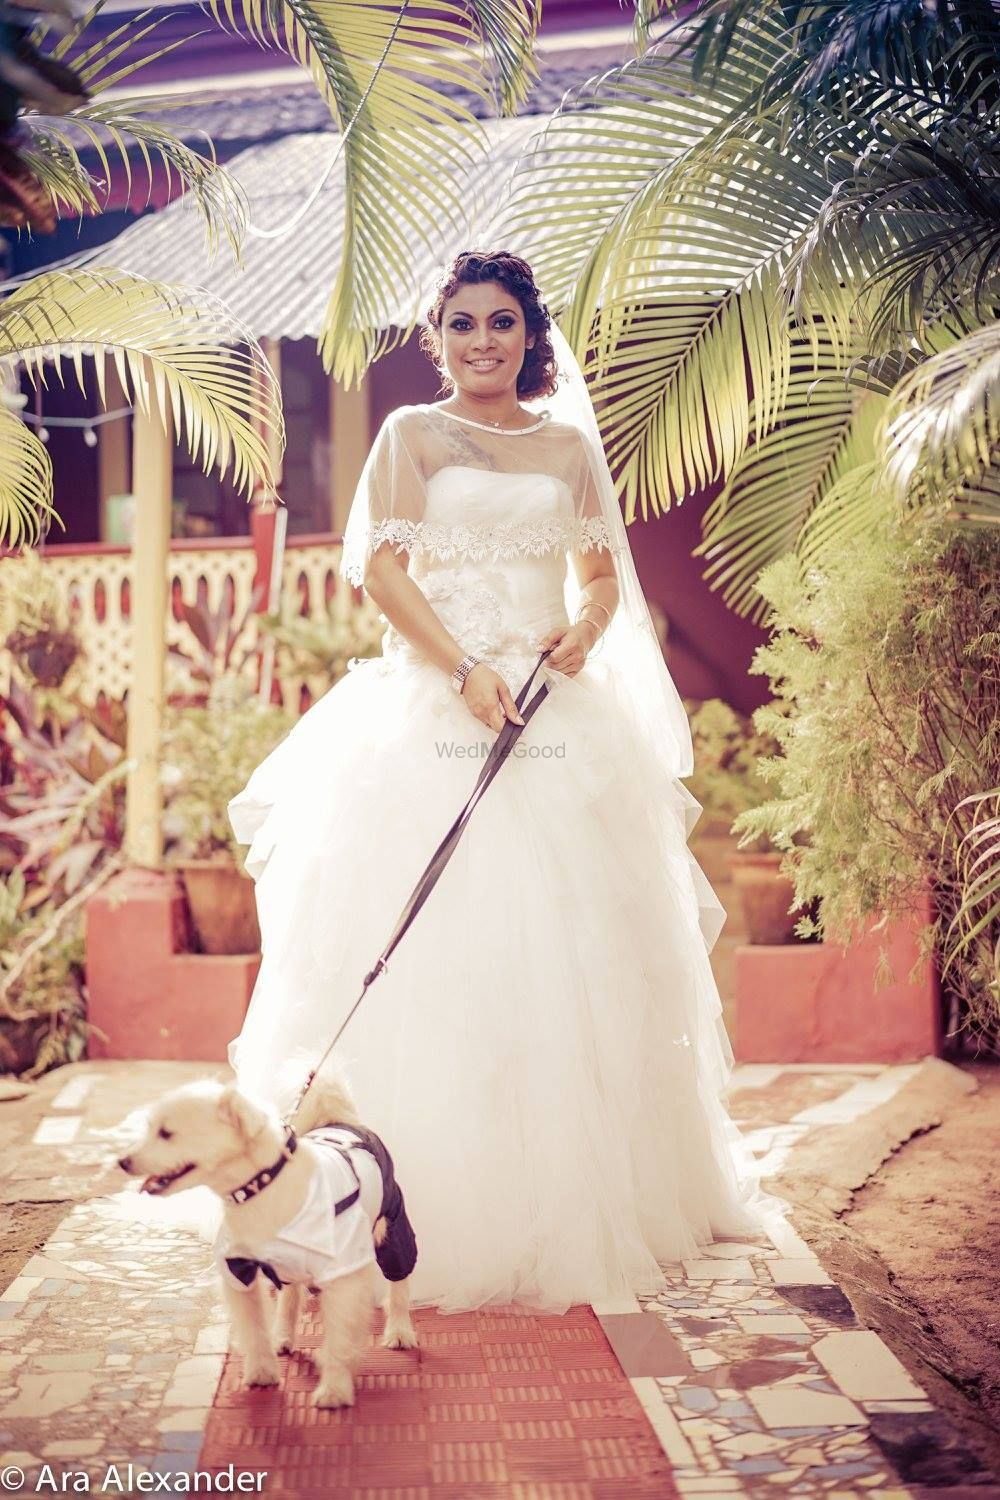 Photo of White Christian Bride with Pet Shot